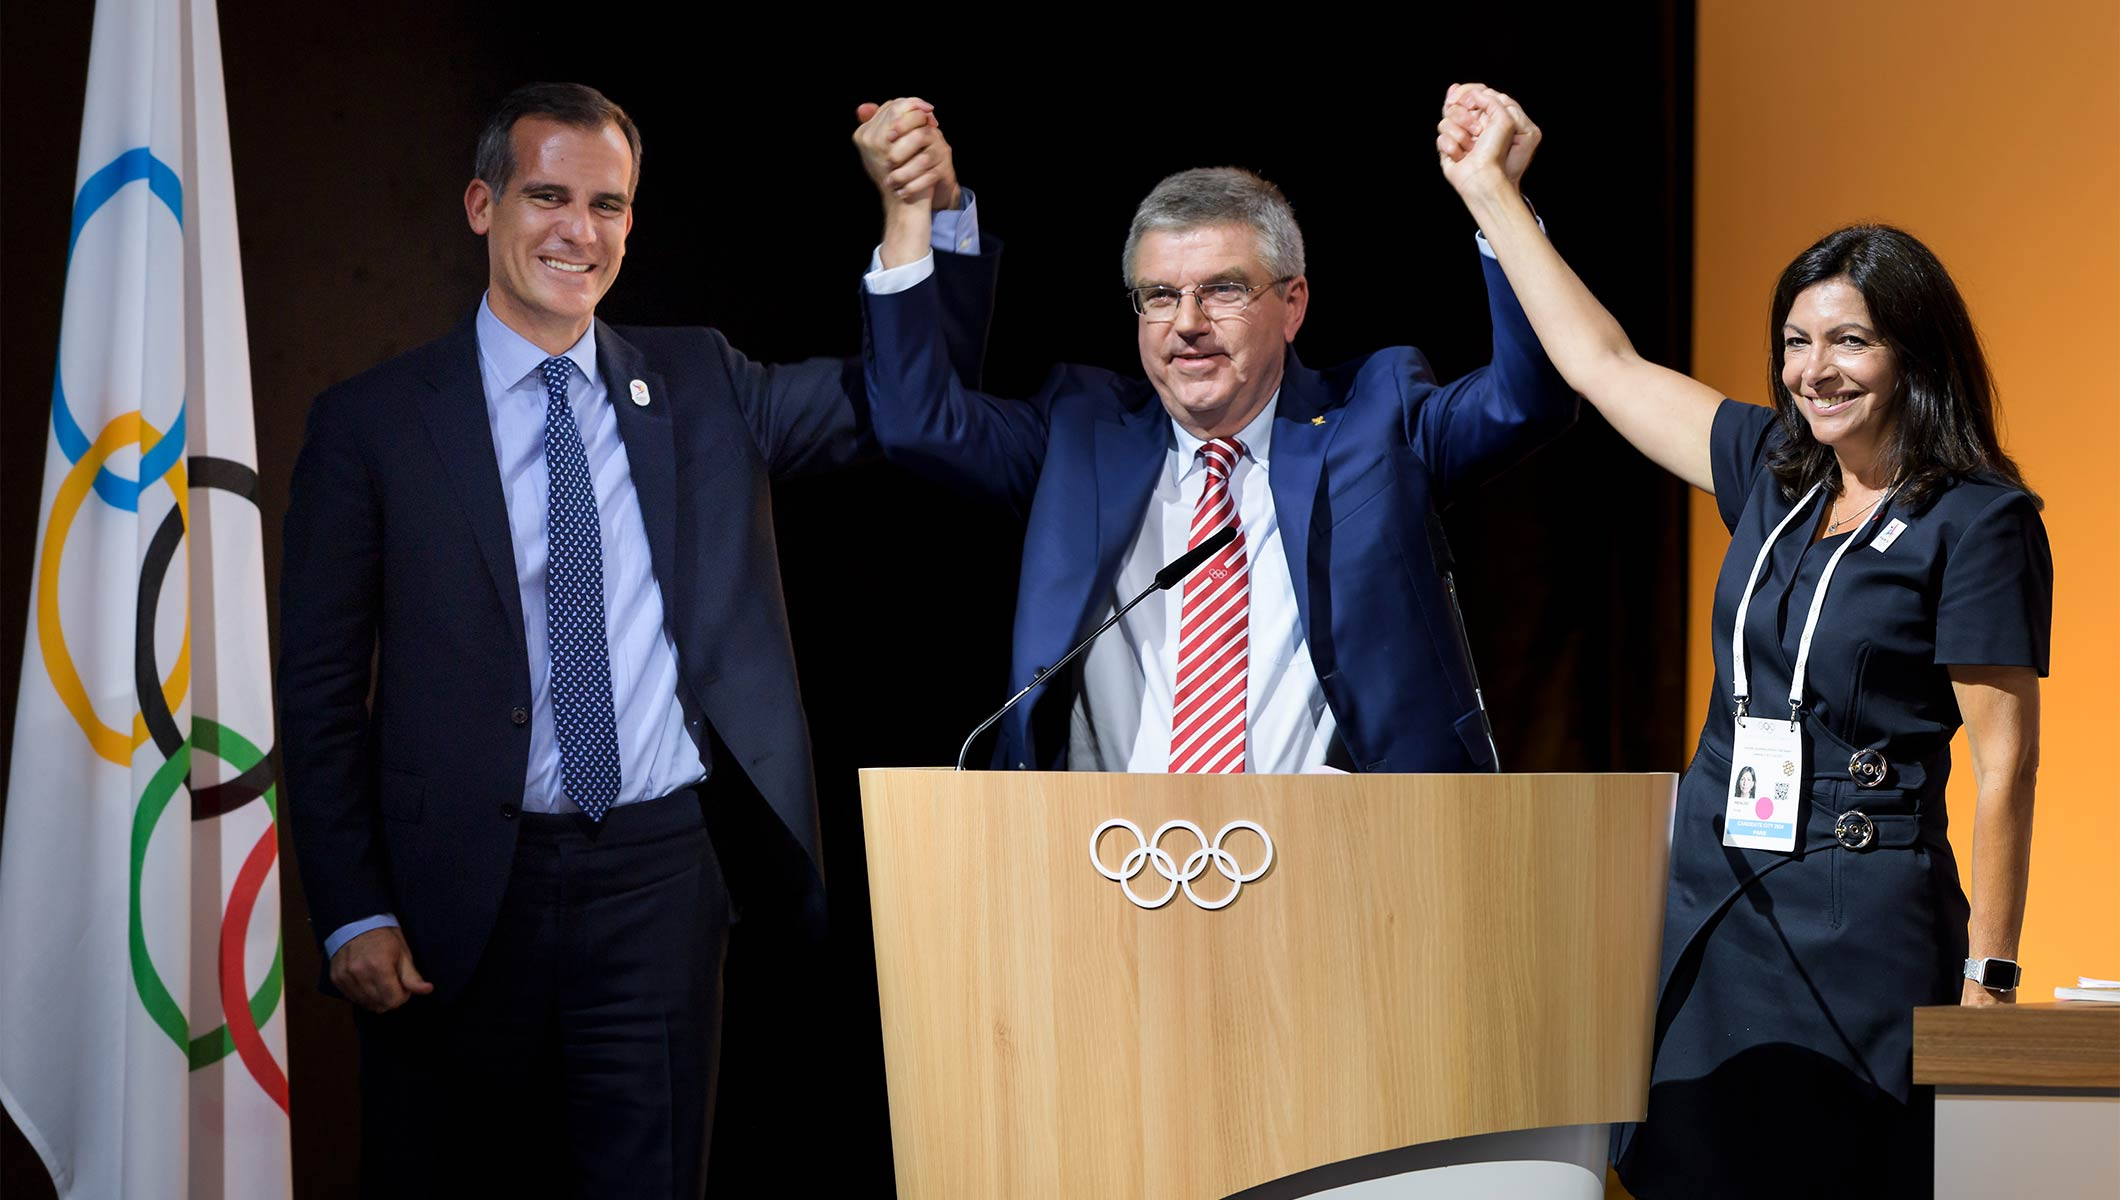 HOW PARIS, LOS ANGELES AND THE IOC MOULDED A 'WIN-WIN-WIN'